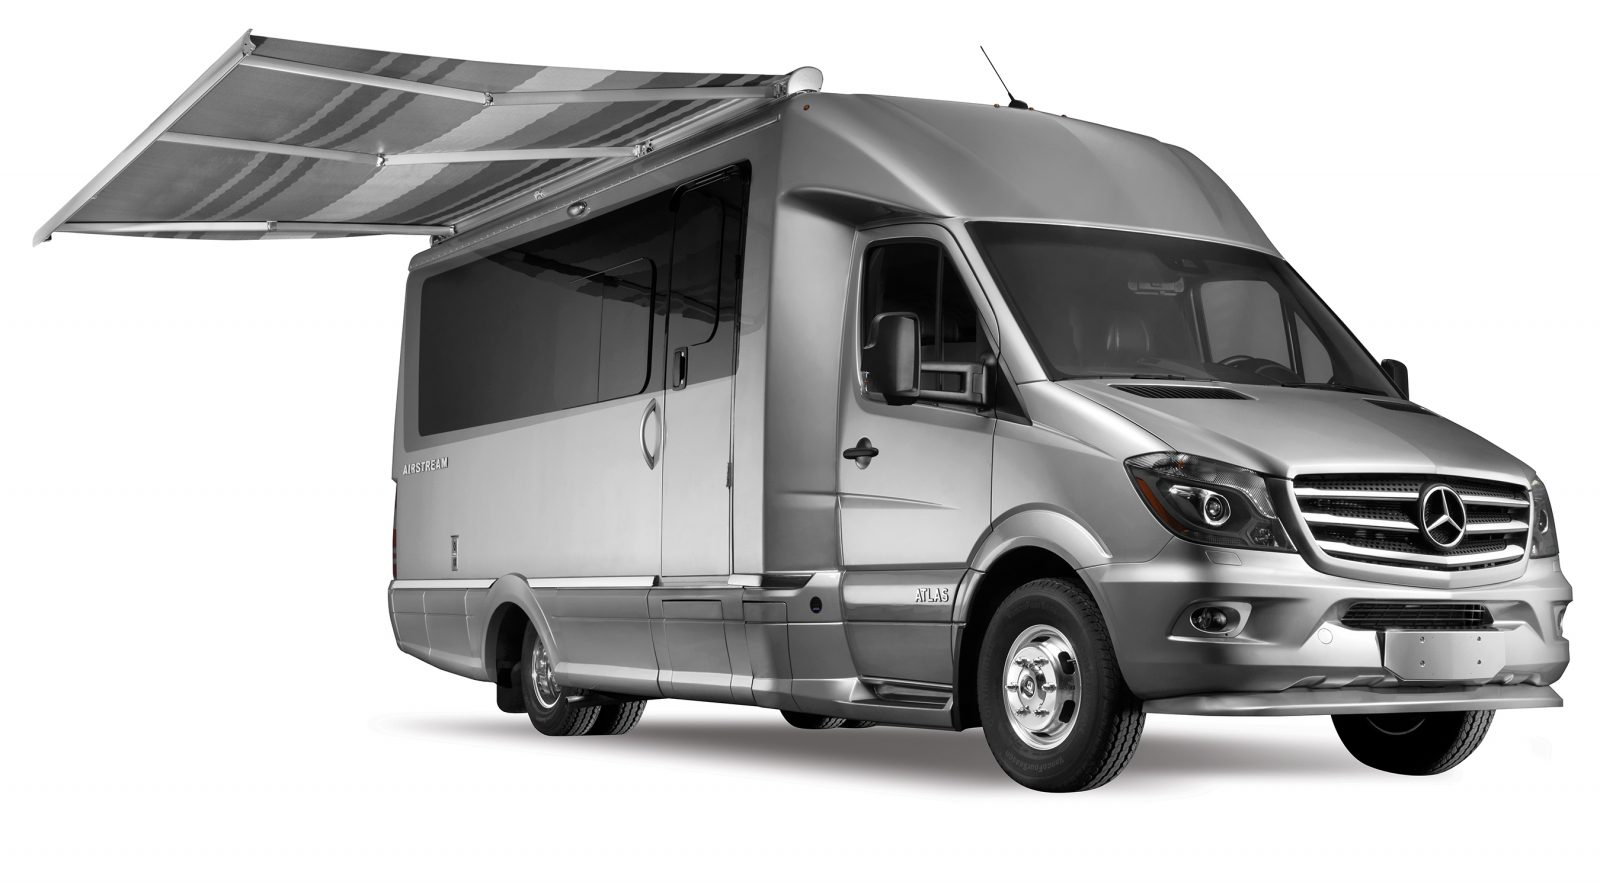 Airstream Atlas Touring Coach with awning recreation design